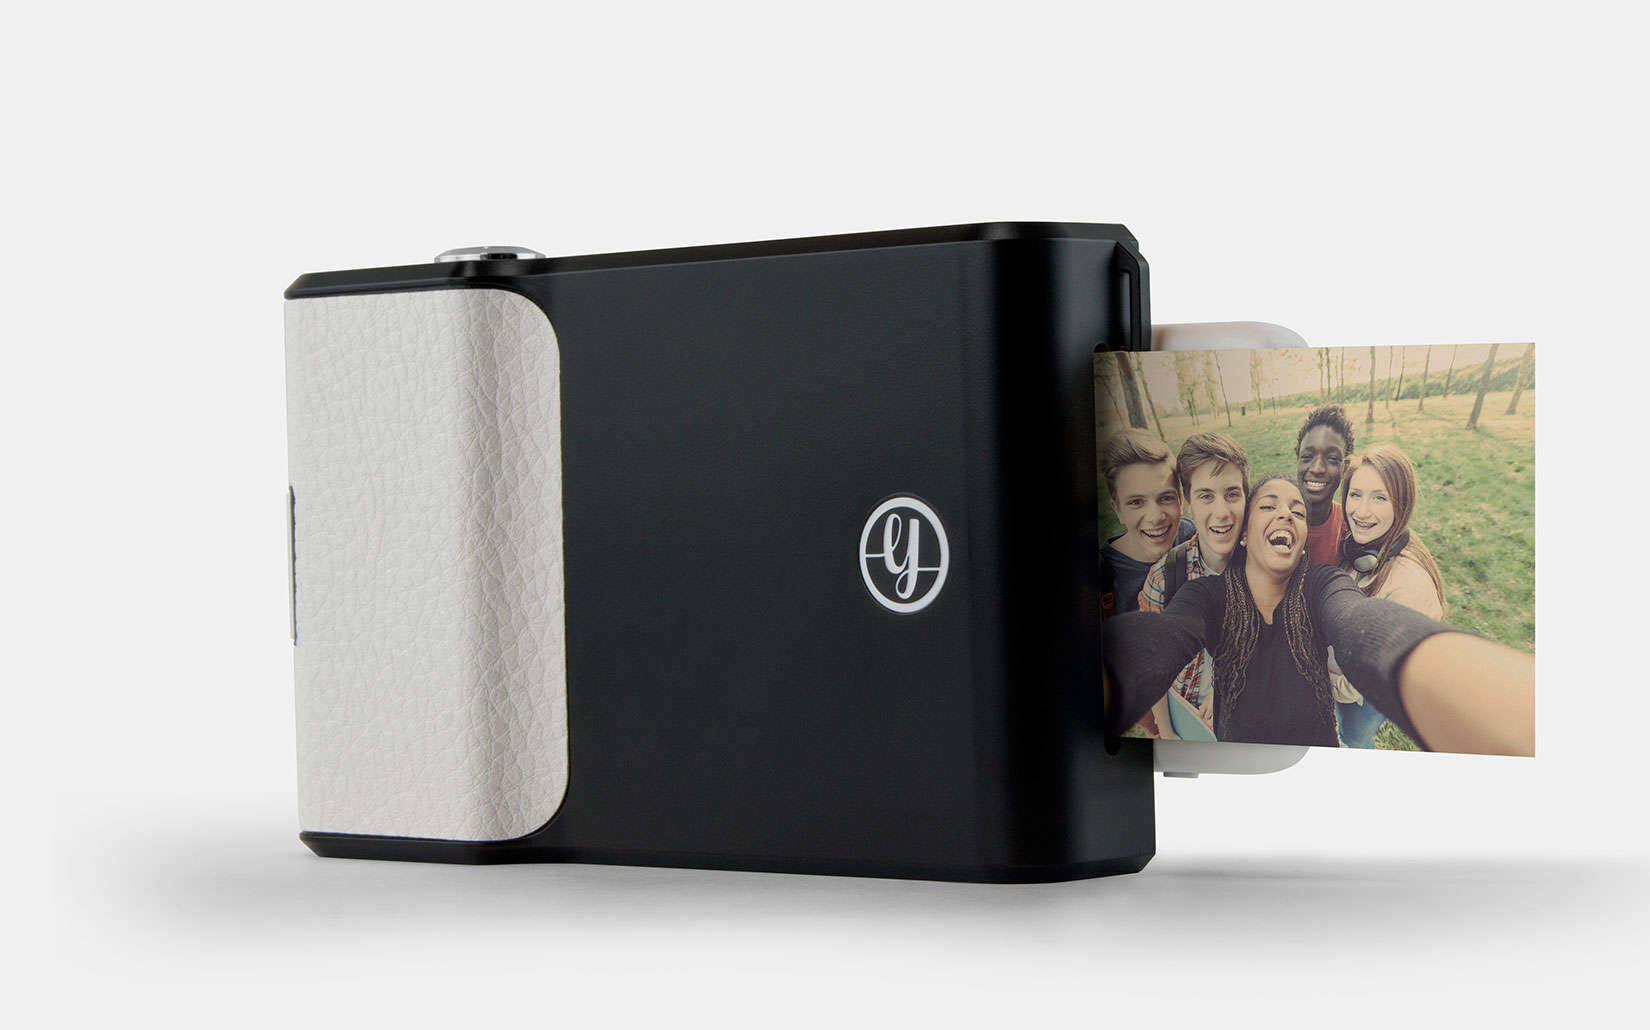 The Prynt Case has a built-in photo printer.